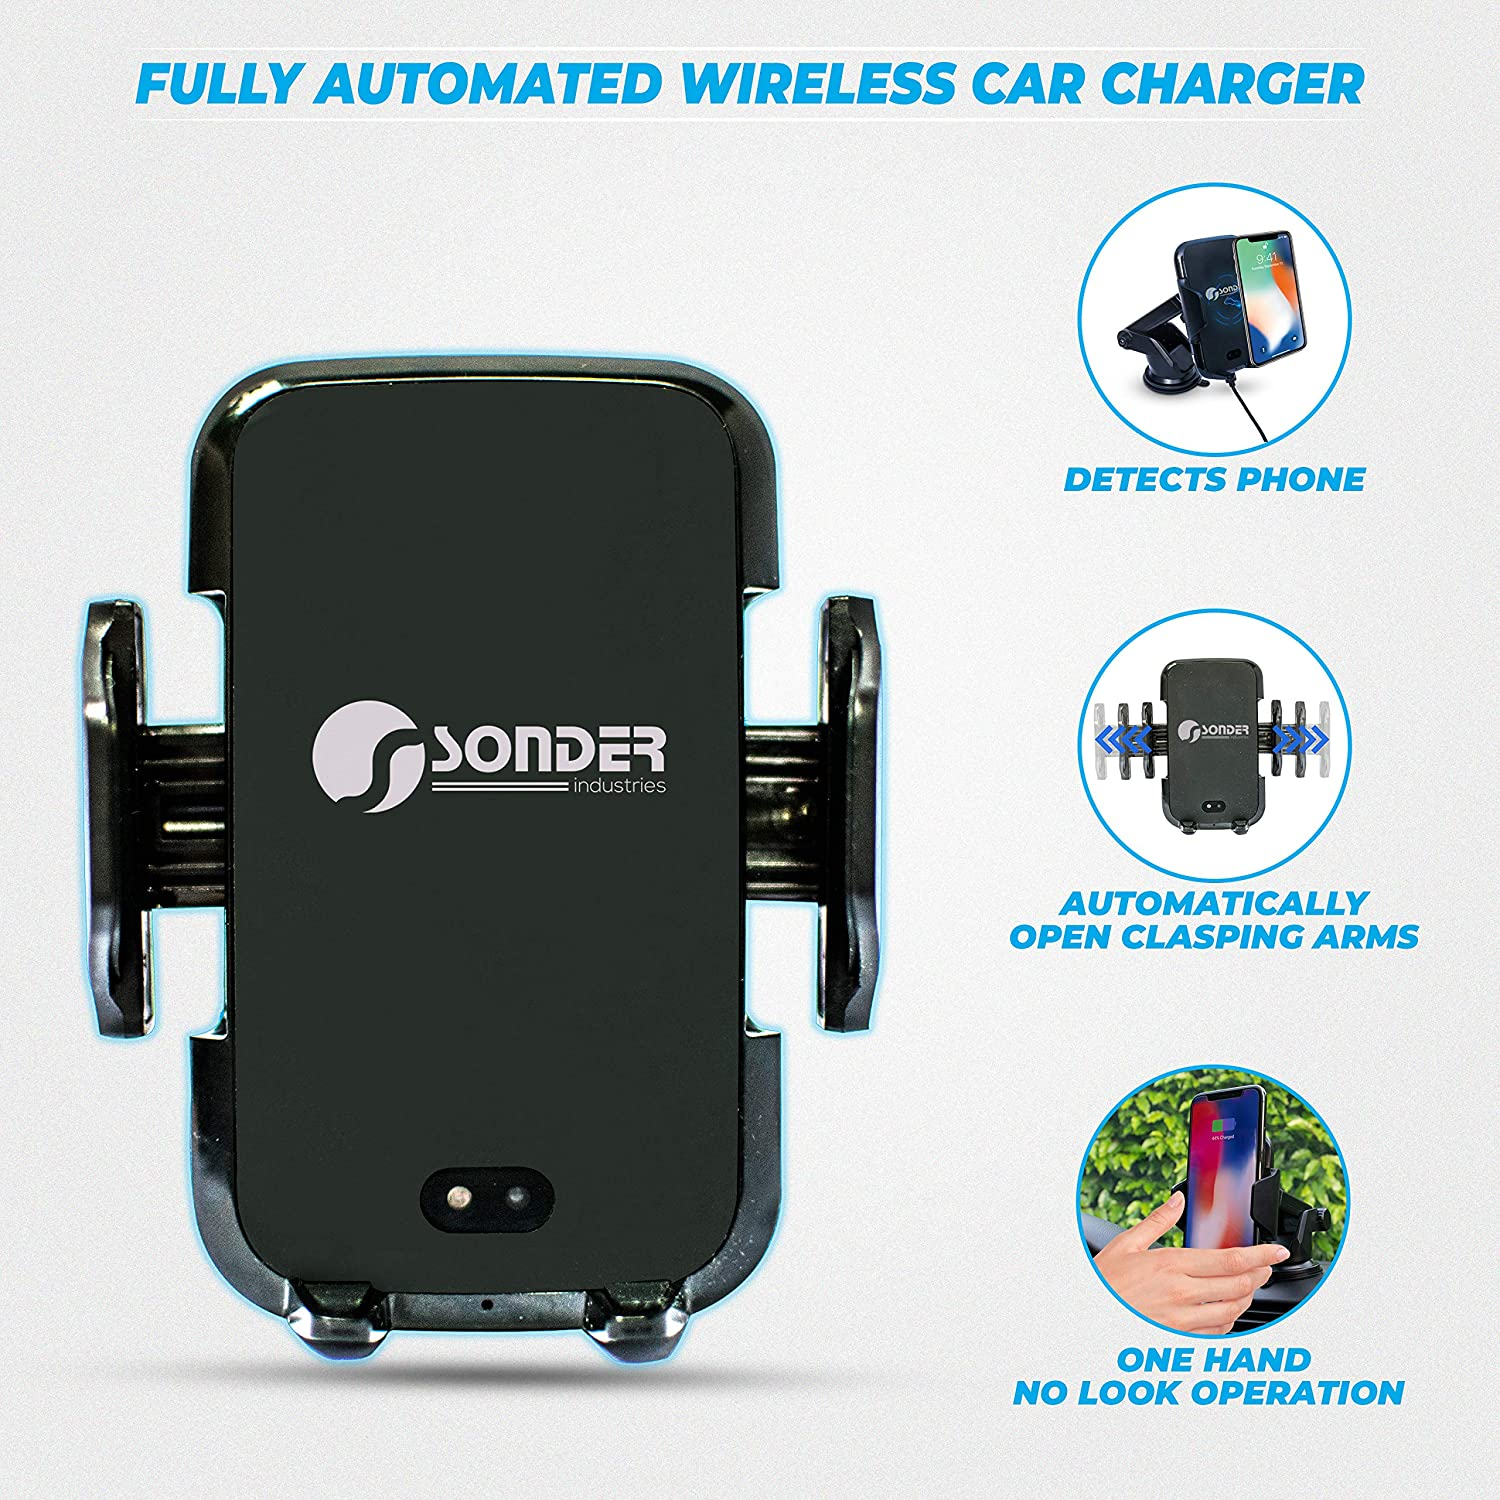 Windshield Dashboard Qi Fast Charging Phone Holder Samsung Note 10//S10 iPhone 11 Pro//11//XS//XR Google Pixel Infrared Sensor Auto-Clamp Sonder Wireless Car Charger Mount Air Vent Compatible